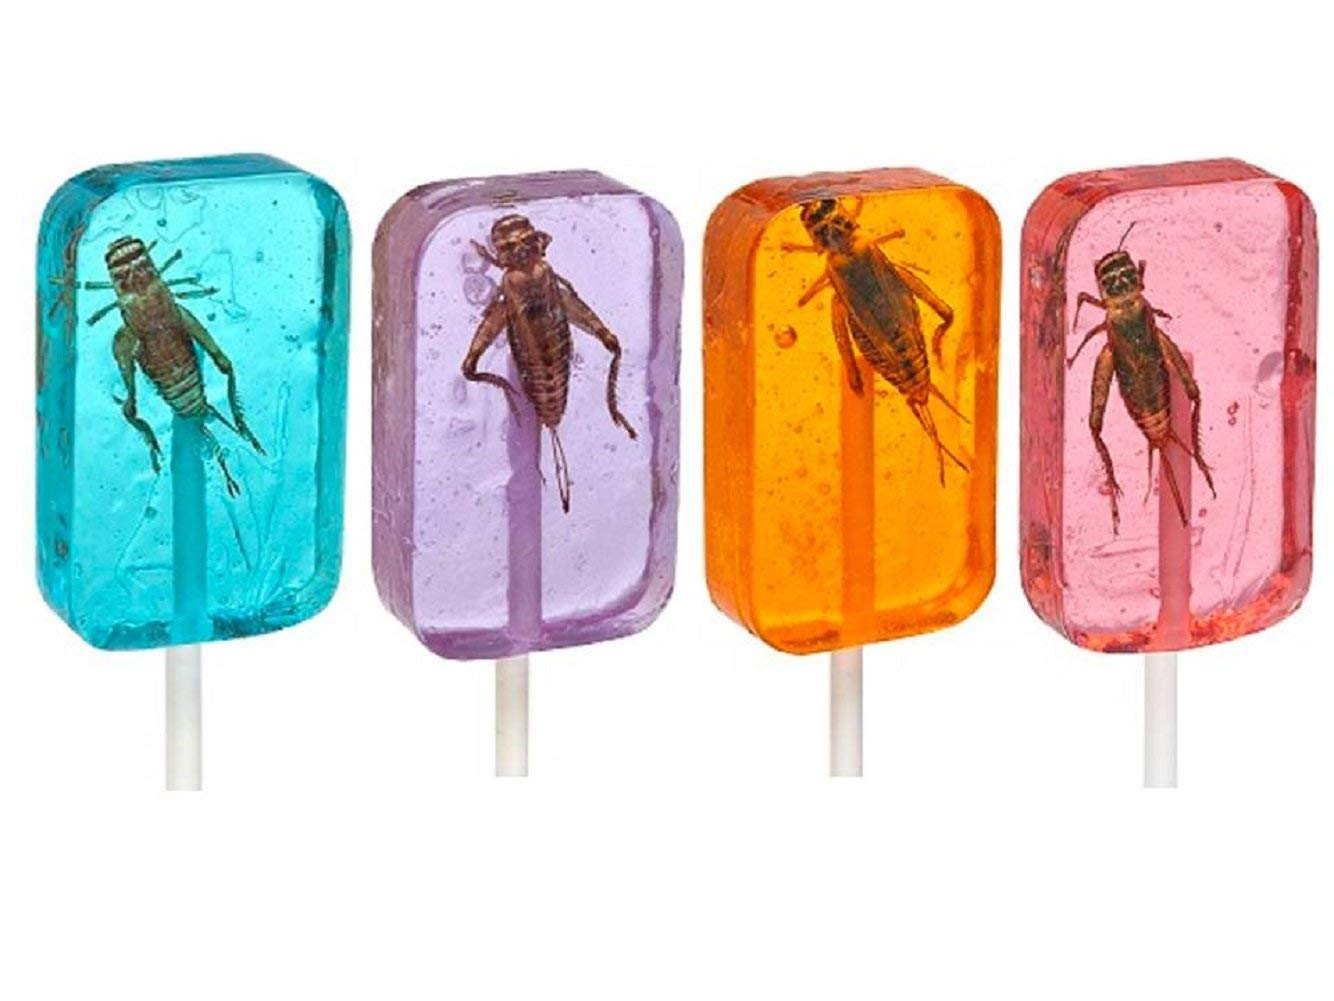 Can they eat this cricket lollipops and get to the chickety center?